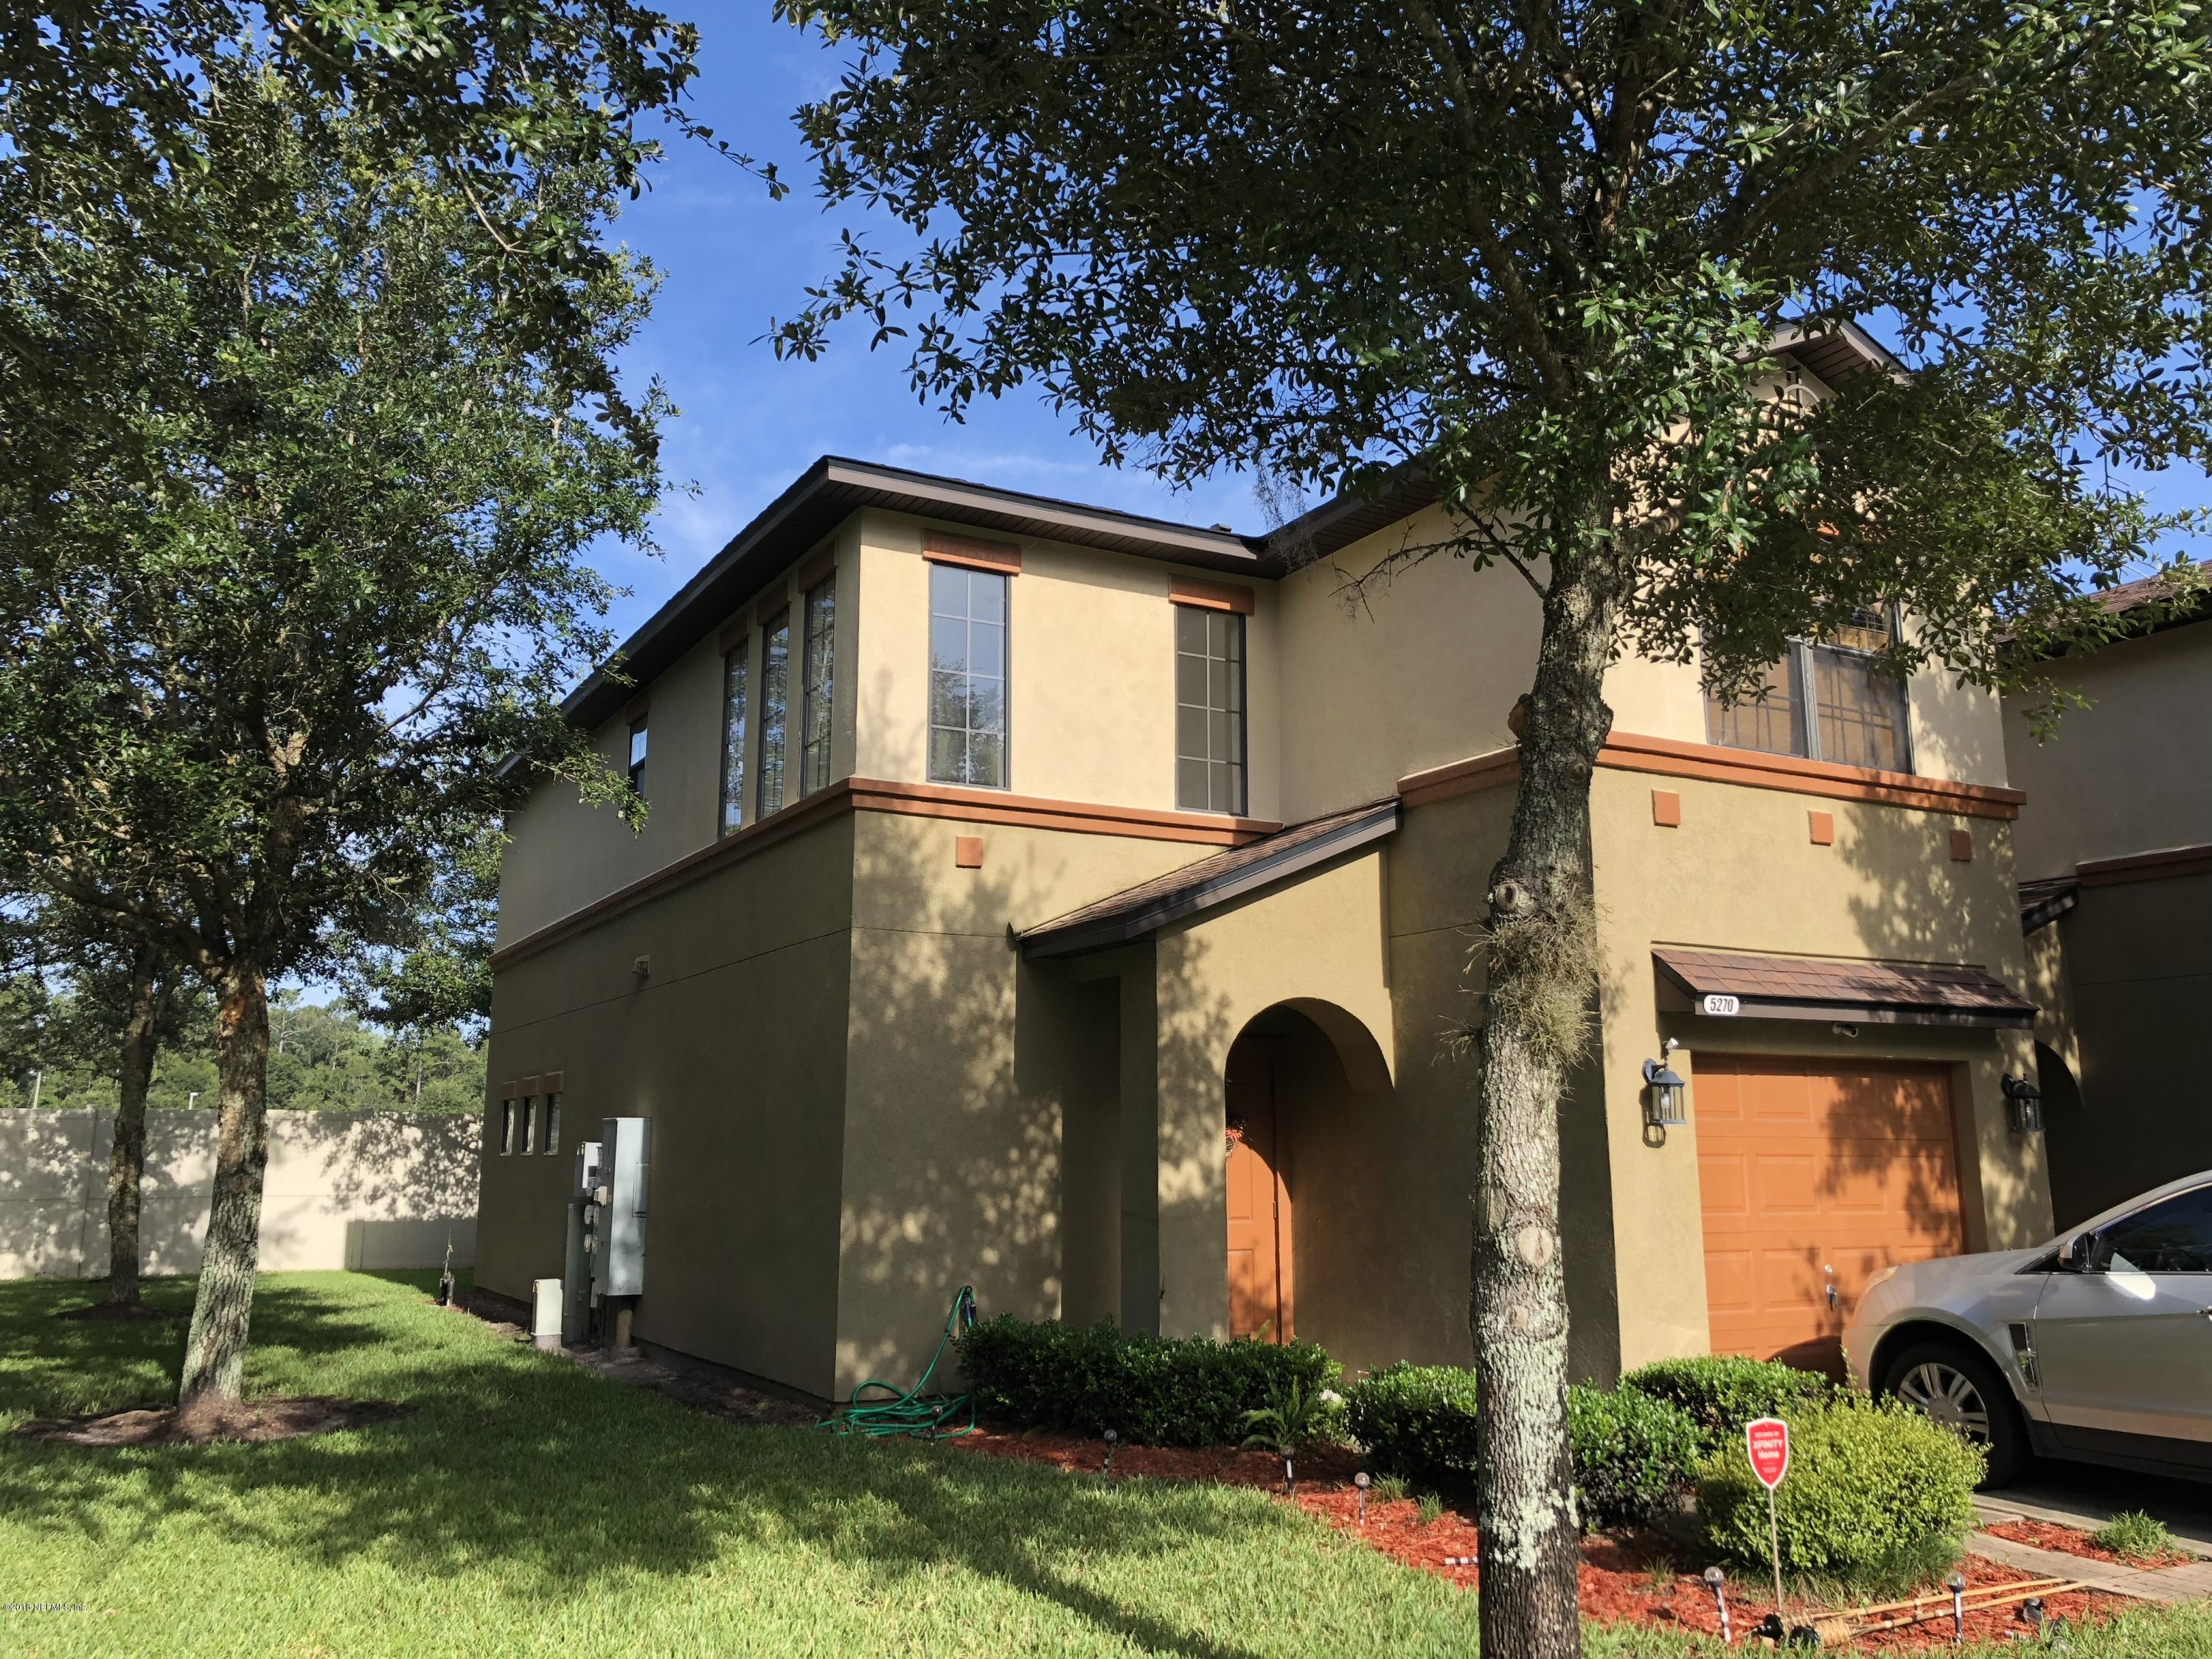 5270 BRIGHTON PARK, JACKSONVILLE, FLORIDA 32210, 3 Bedrooms Bedrooms, ,2 BathroomsBathrooms,Residential - townhome,For sale,BRIGHTON PARK,950352